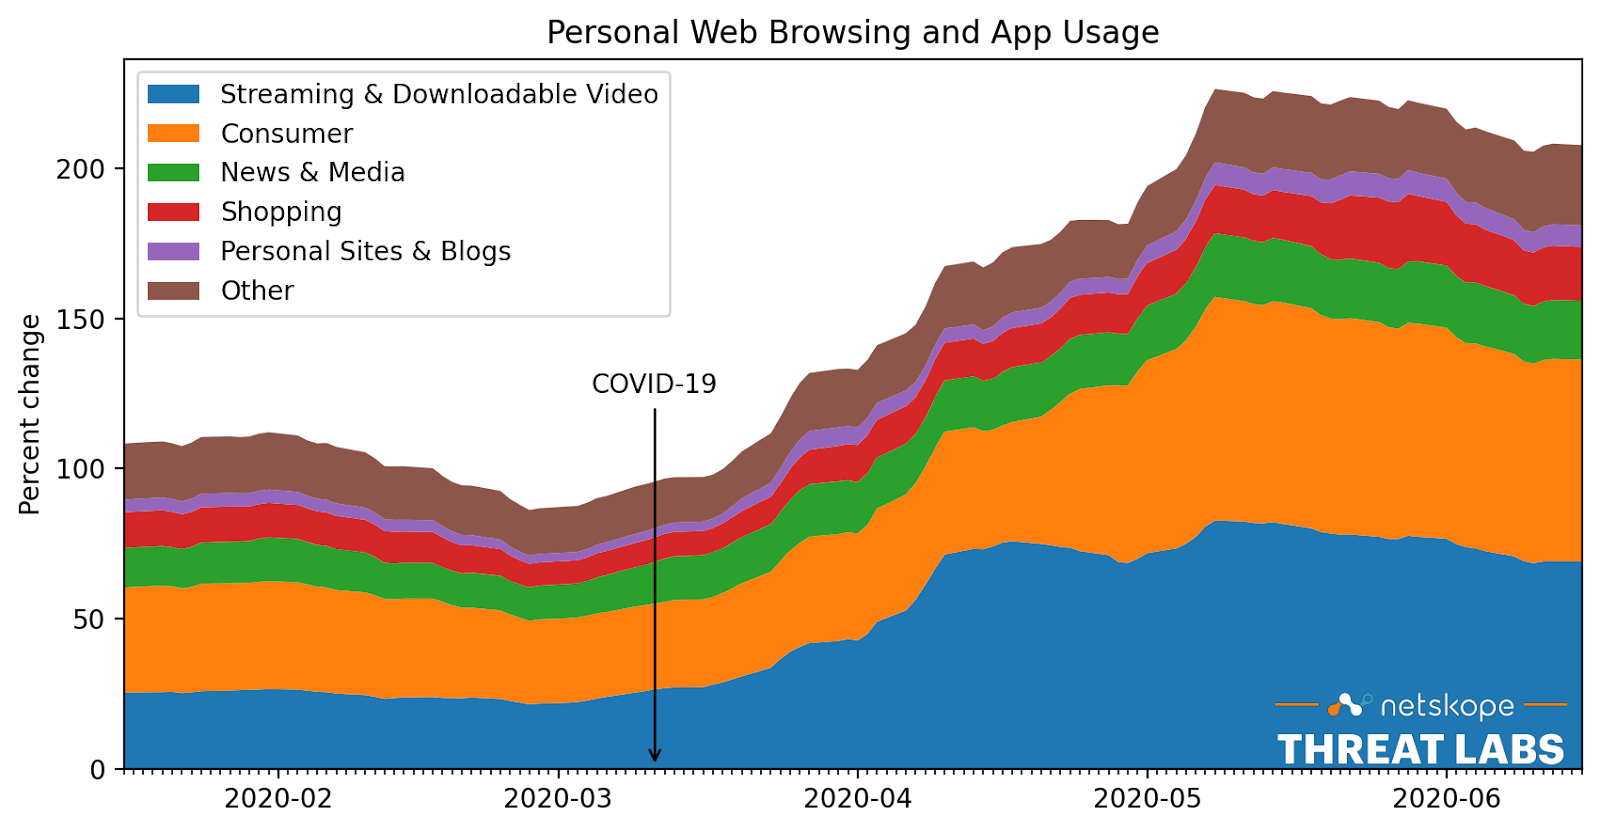 Figure 1. Personal web browsing and app usage doubles during COVID-19 pandemic